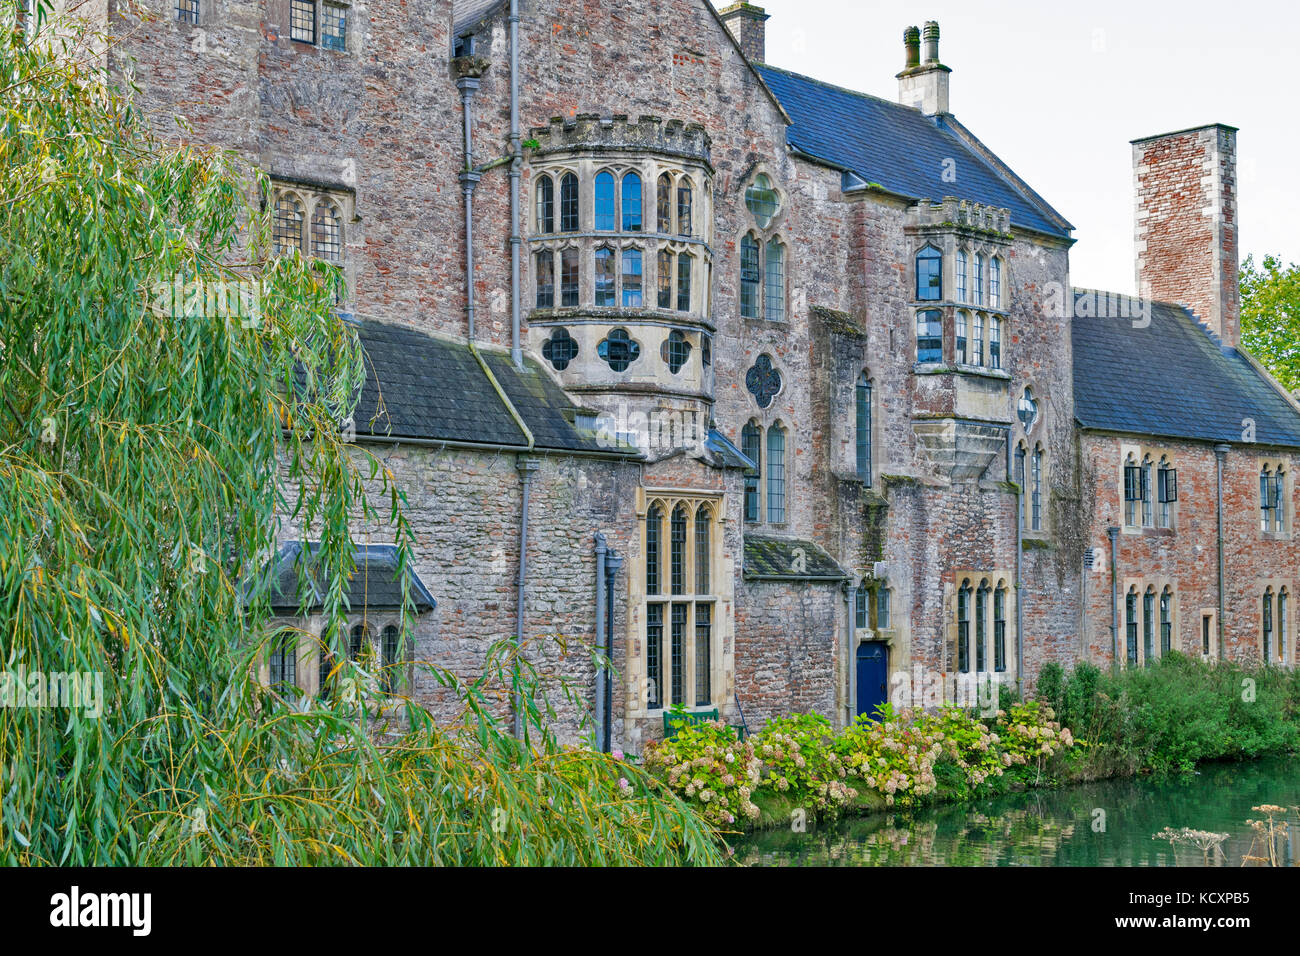 WELLS SOMERSET ENGLAND THE  BISHOPS PALACE VIEW OF WALL WITH MANY TYPES OF WINDOW OVERLOOKING THE MOAT - Stock Image